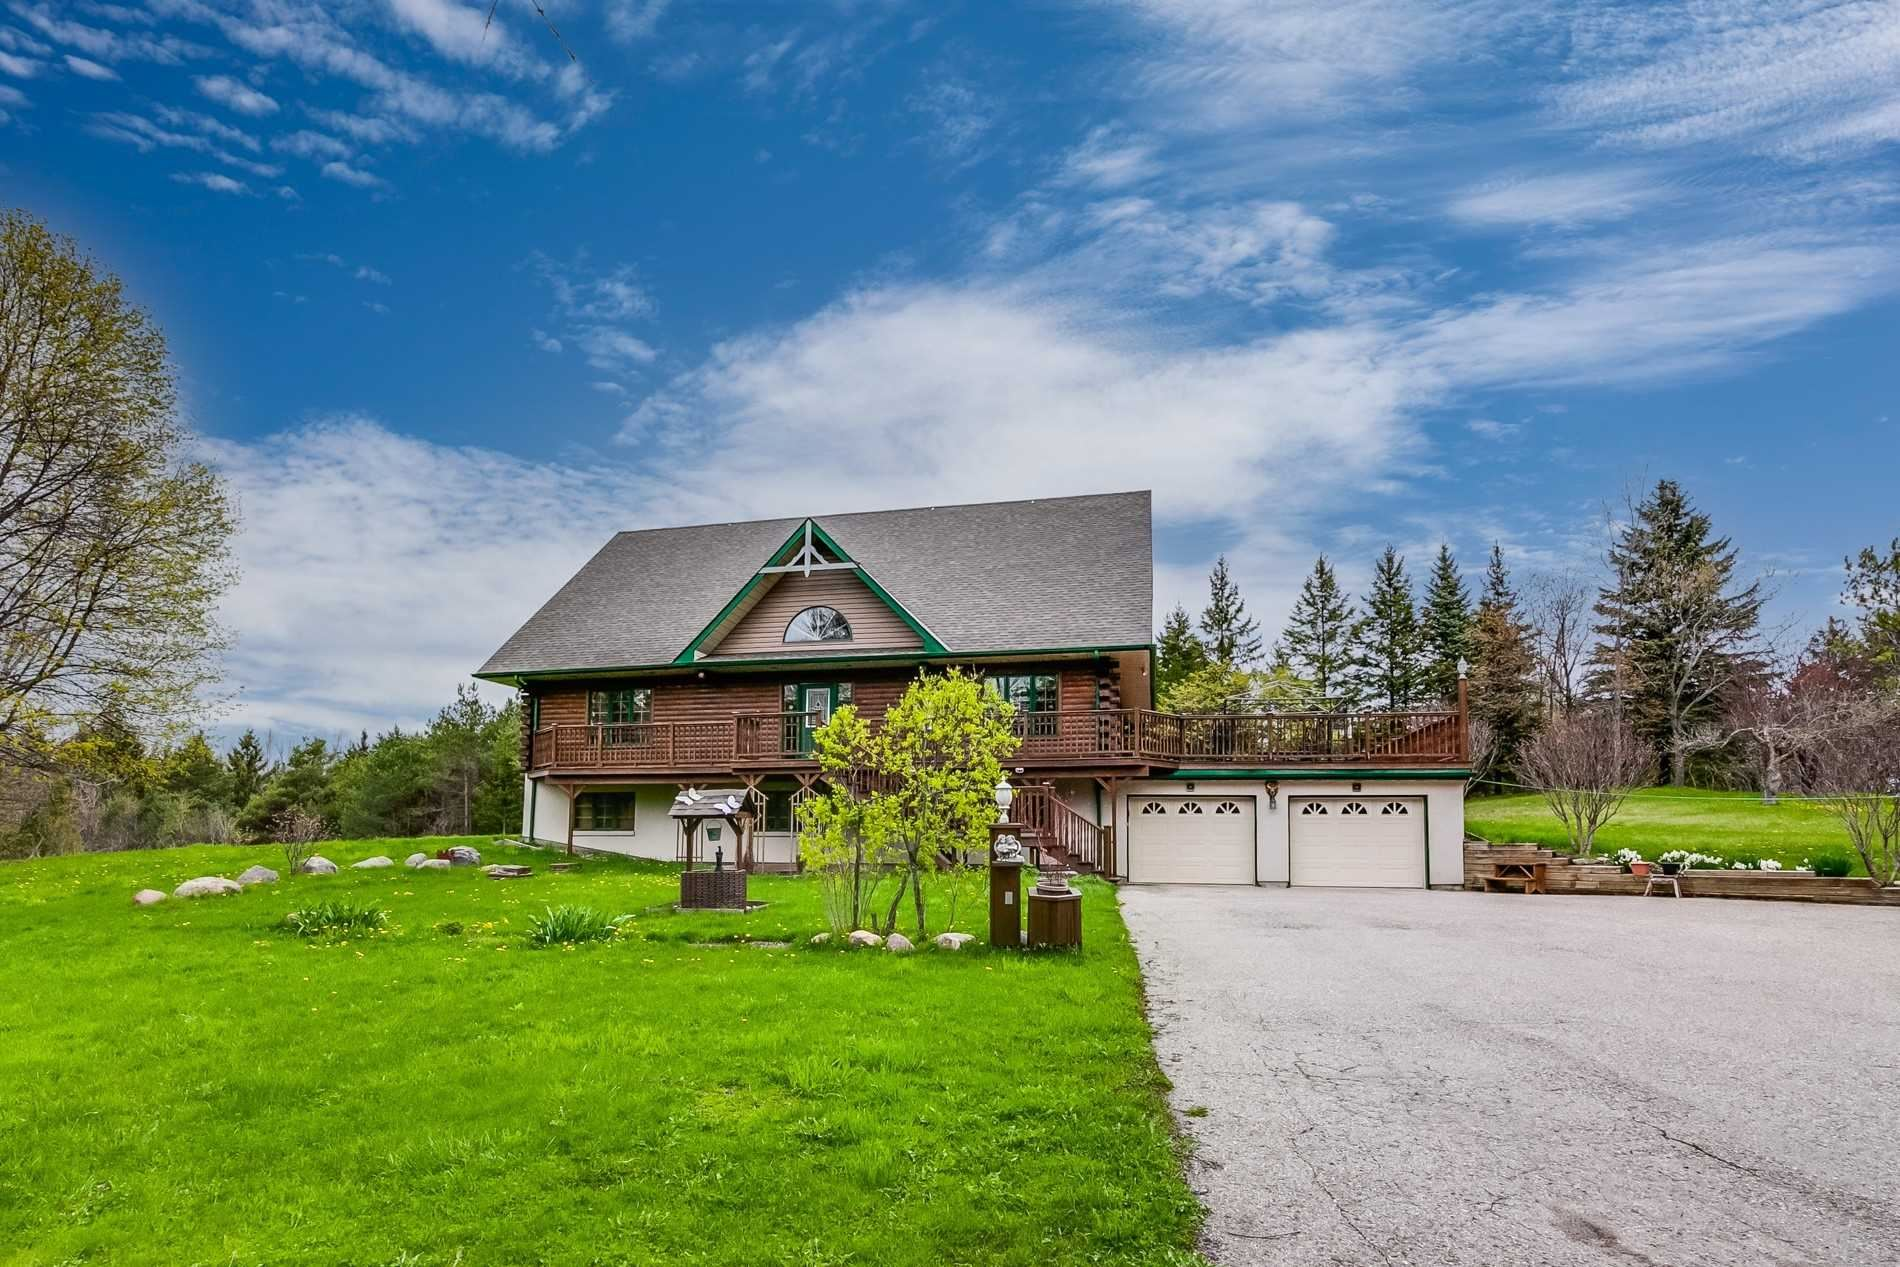 4248 Bloomington Rd, Whitchurch-Stouffville, ON L4A 7X5 - MLS#: N5180359